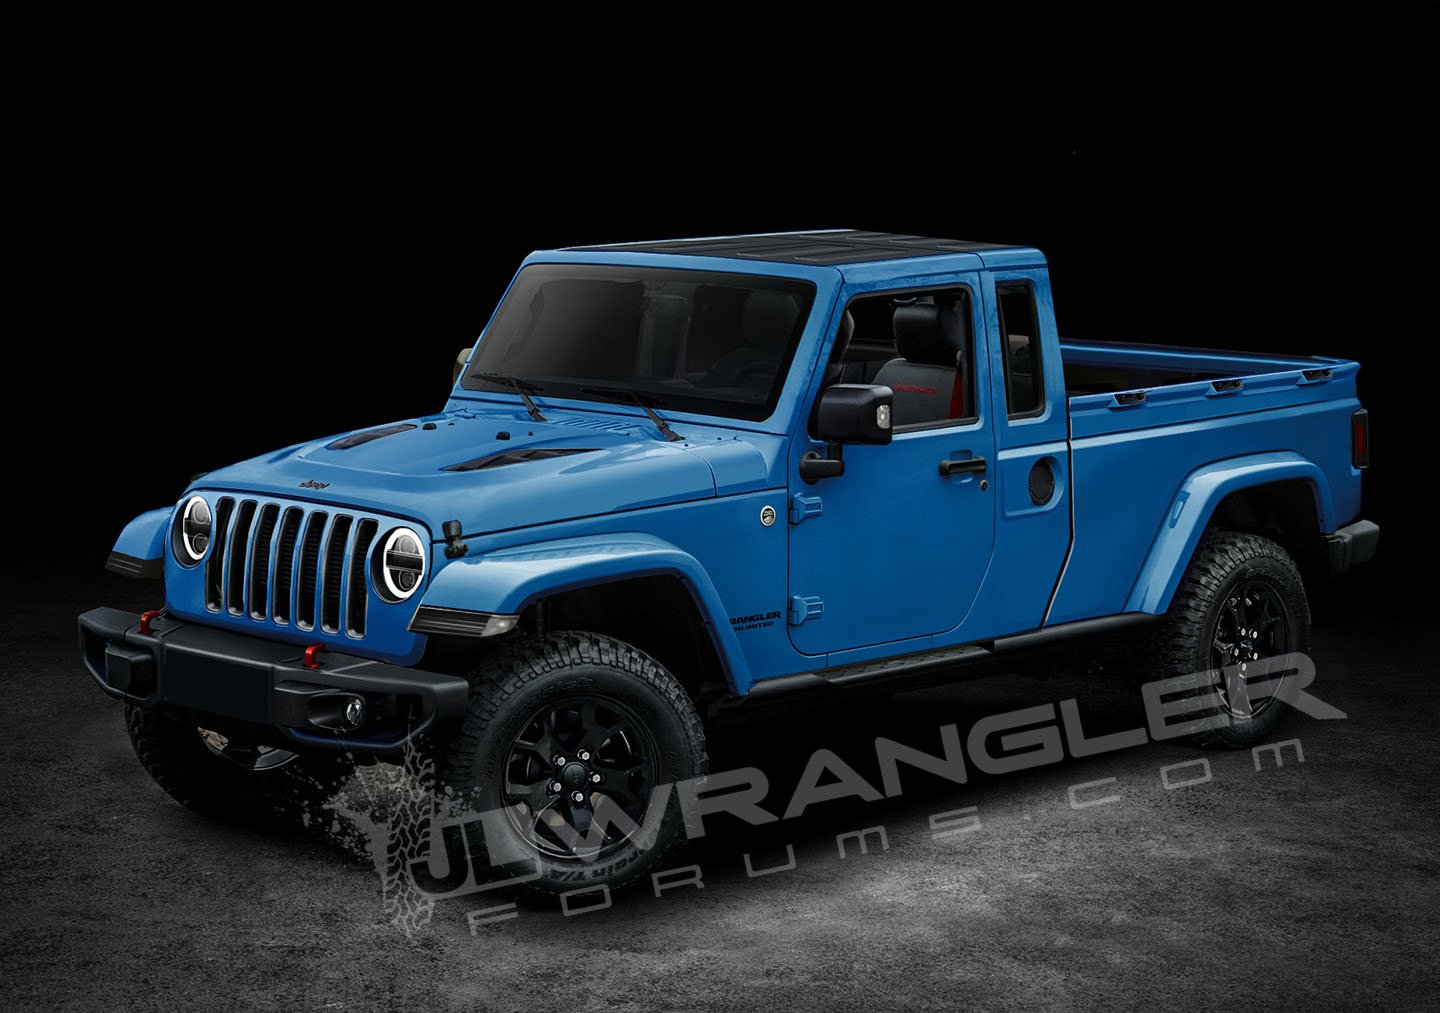 2019 jeep wrangler pickup looks scrambler rific in latest. Black Bedroom Furniture Sets. Home Design Ideas